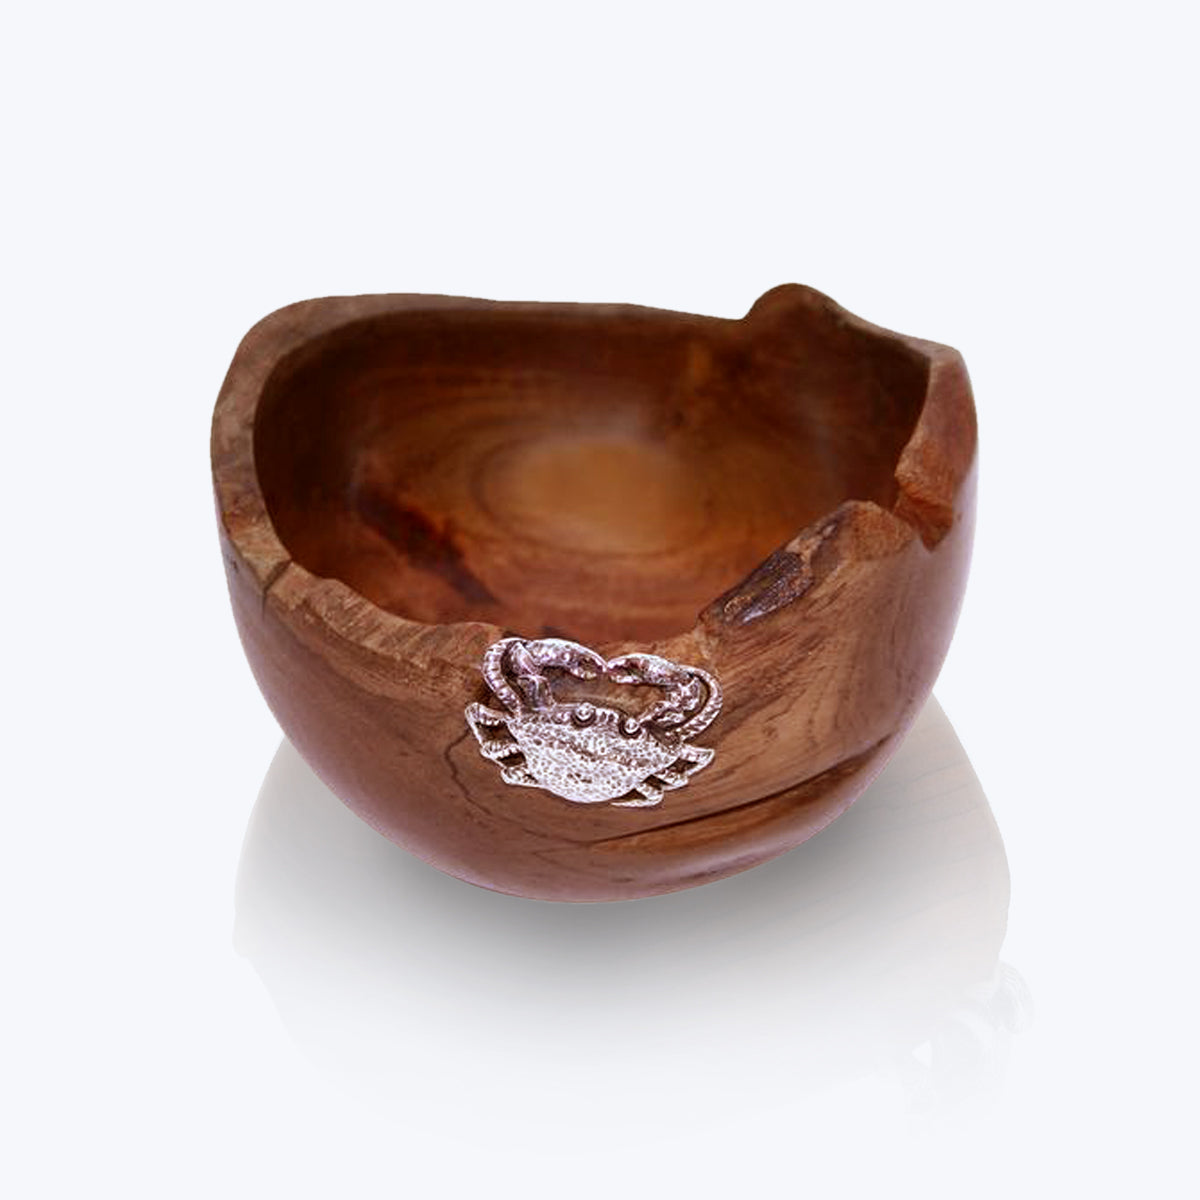 Teak Wood Bowl with Silver Crab